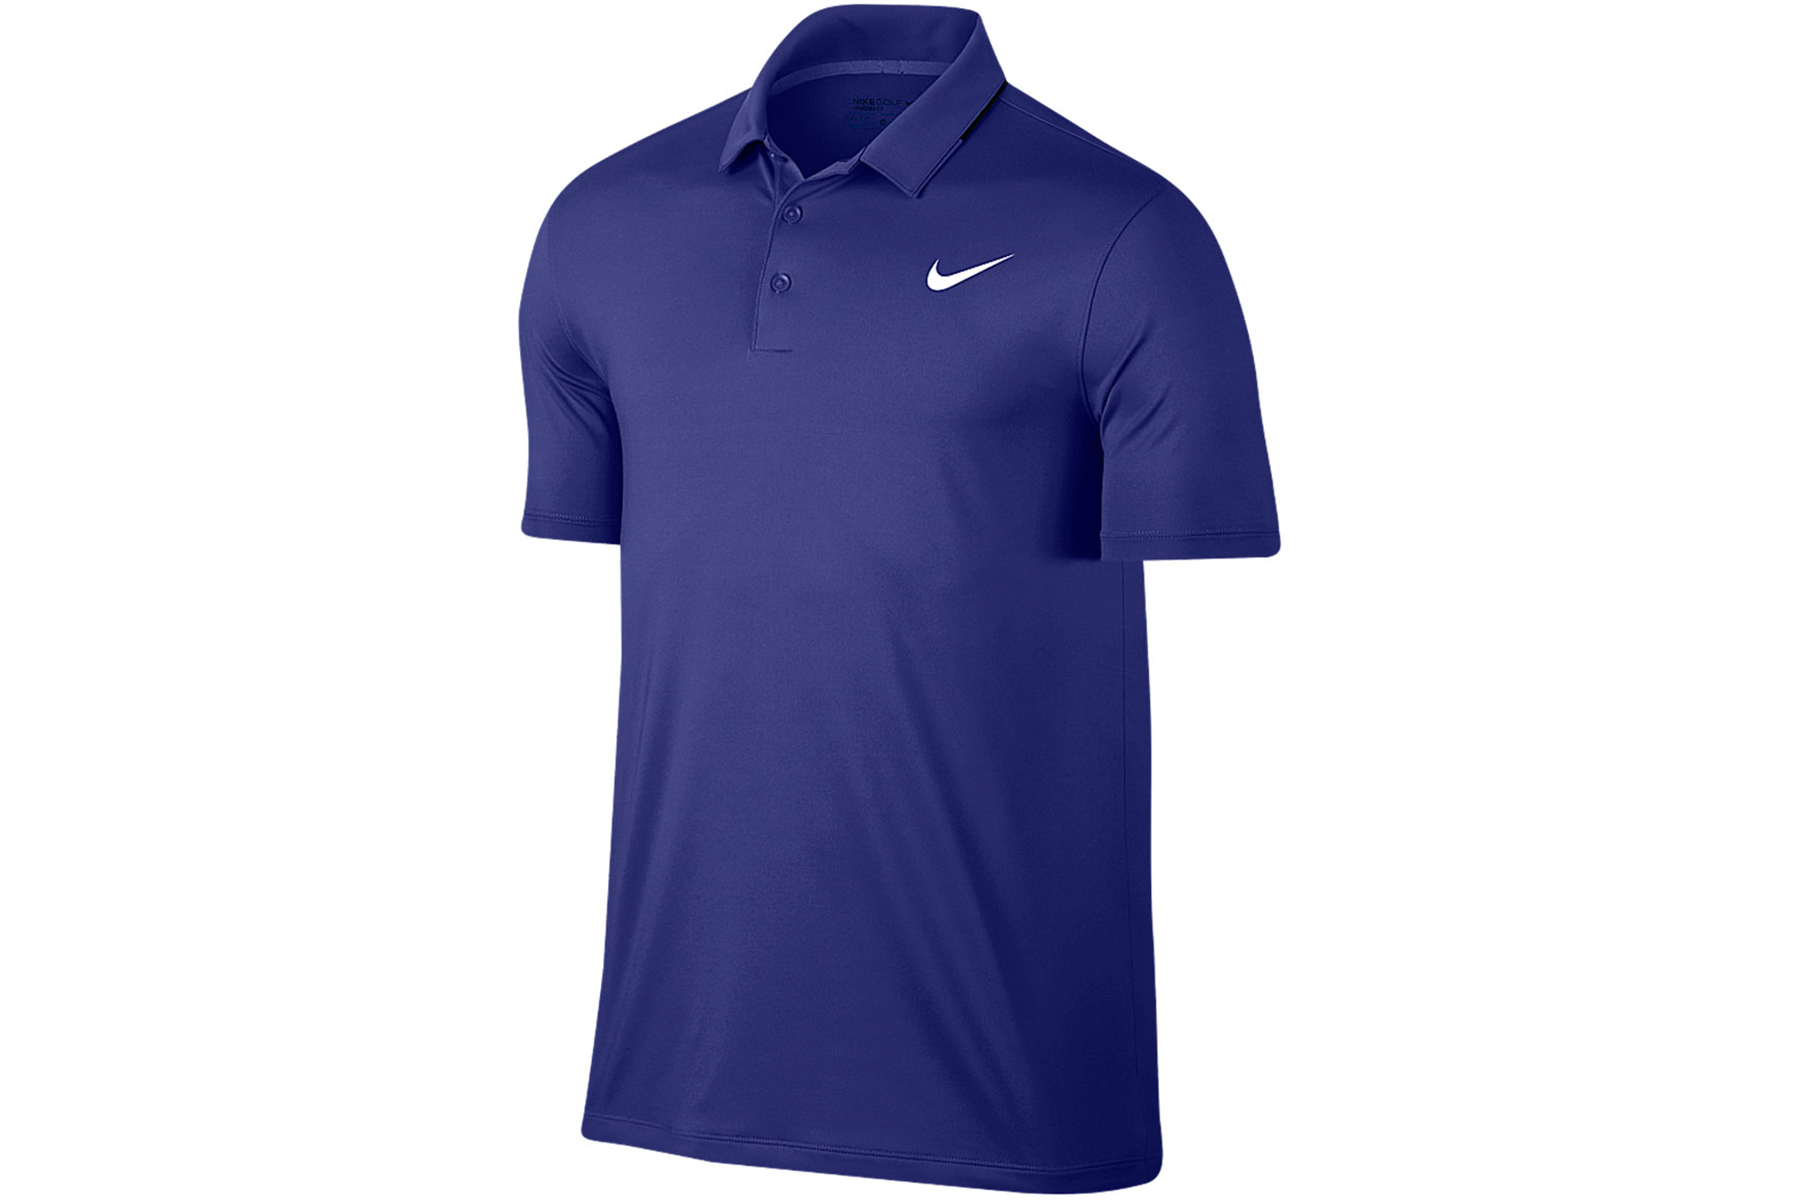 Nike golf icon elite polo shirt from american golf for Nike polo golf shirts